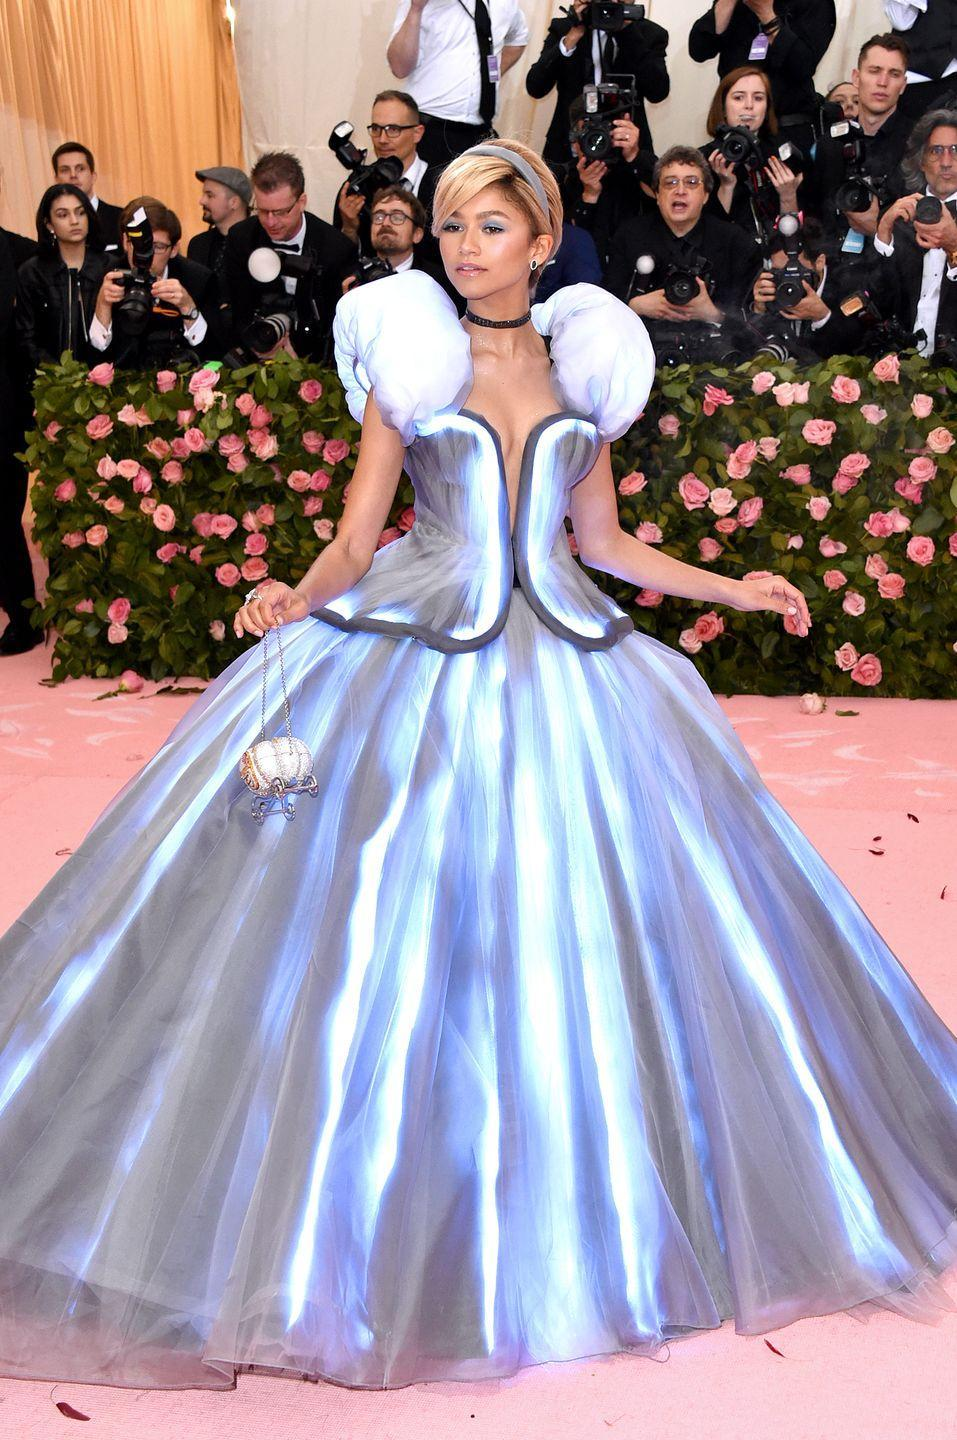 <p>Simply no one at the 2019 Met Gala was ready for her to show up looking like a real-life fairy tale. This Cinderella-inspired look was custom made by Tommy Hilfiger, and it fully lit up the red carpet (like, literally, it had a light-up feature installed).</p>